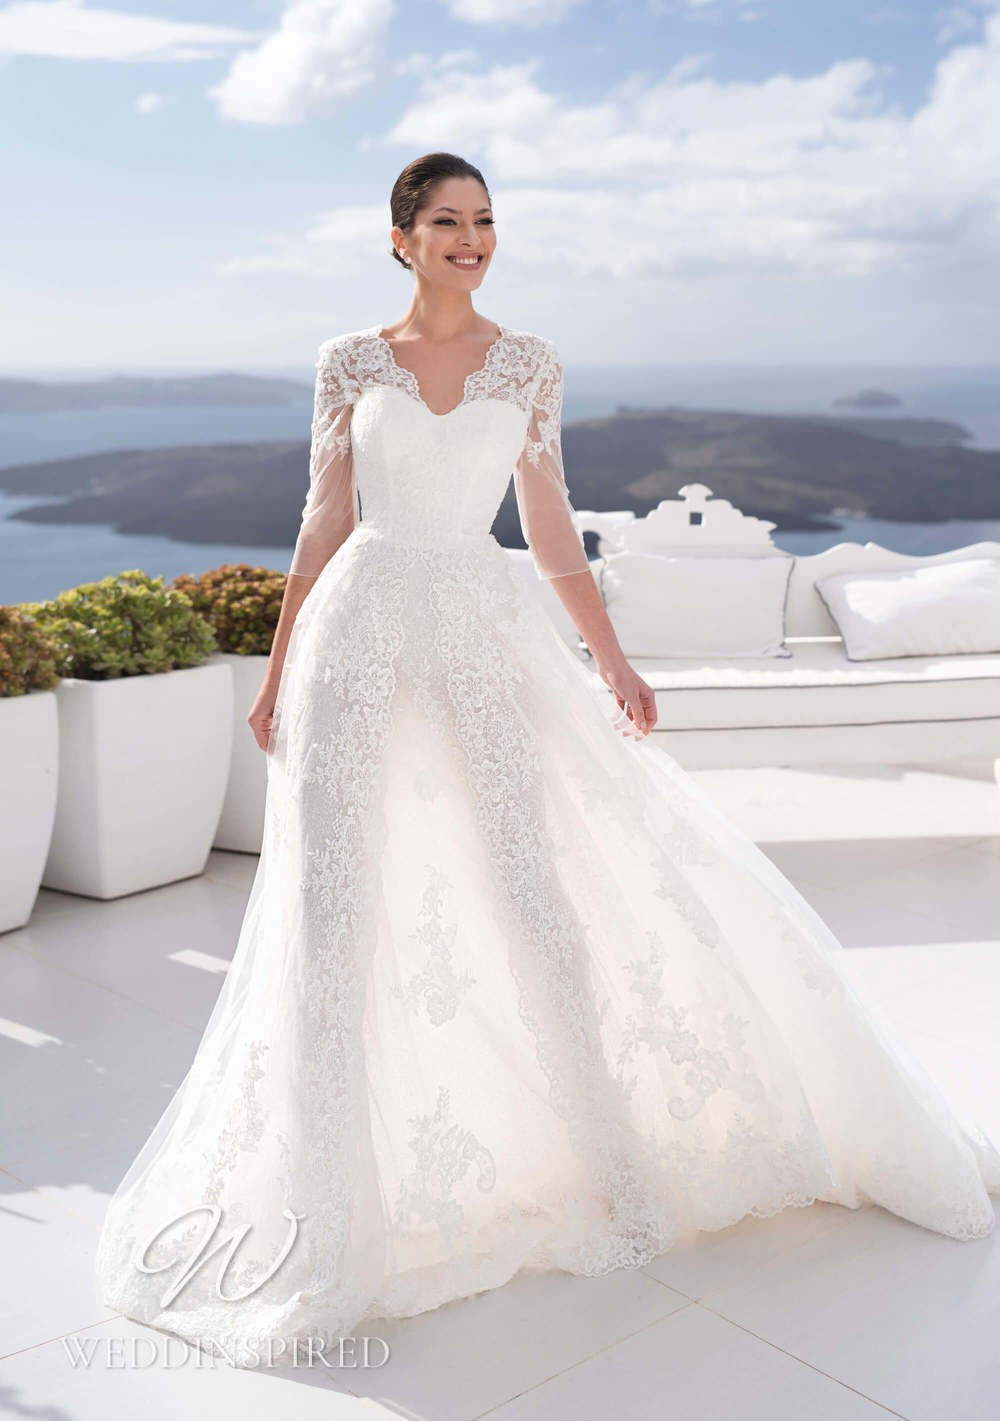 A Blunny 2021 lace A-line wedding dress with 3/4 sleeves